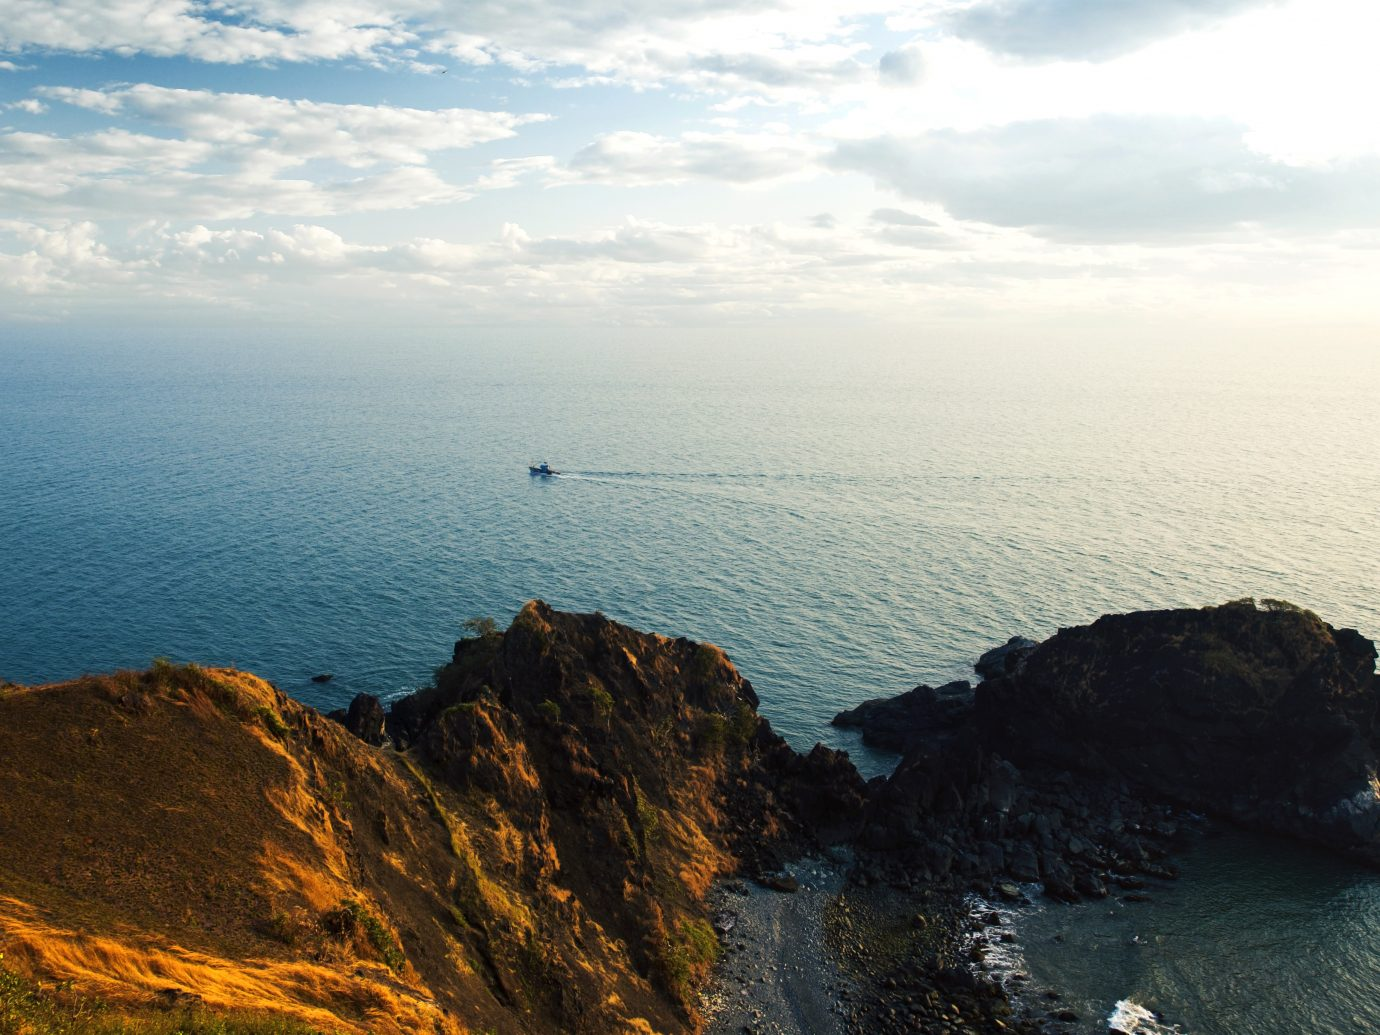 beautiful view of the water from high cliff in Goa, India